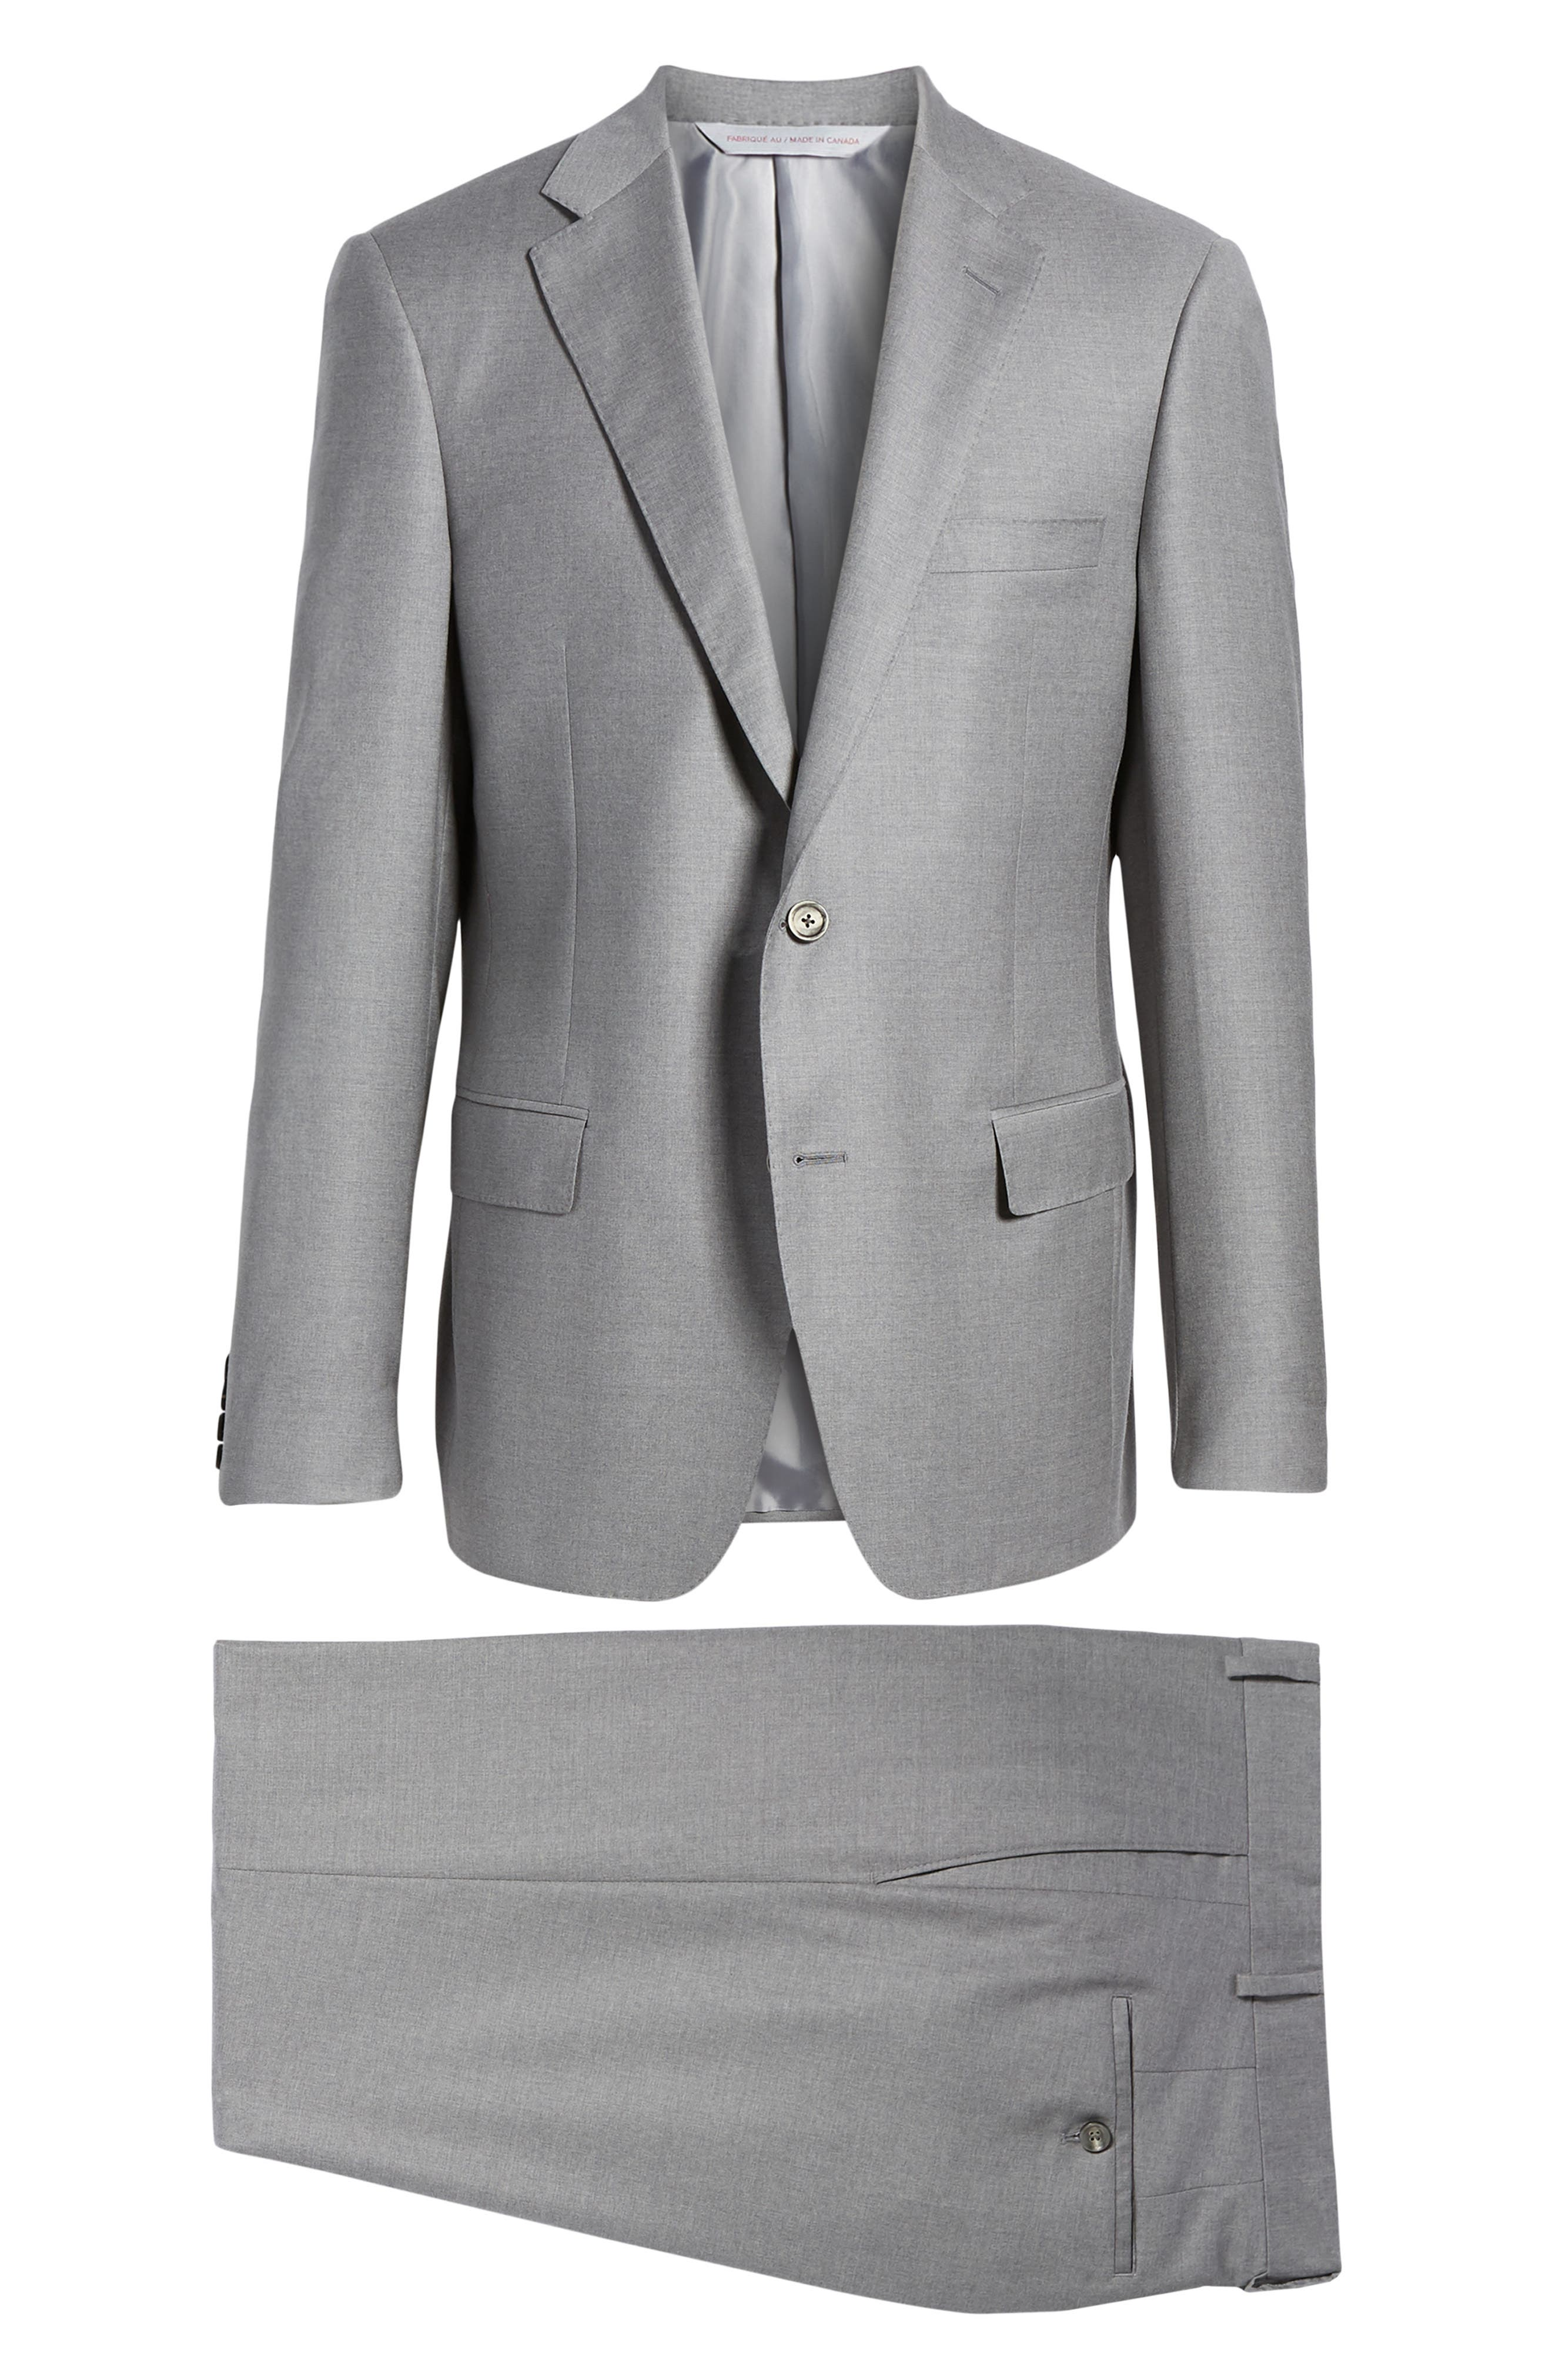 Bennet Classic Fit Solid Wool Suit,                             Alternate thumbnail 8, color,                             020